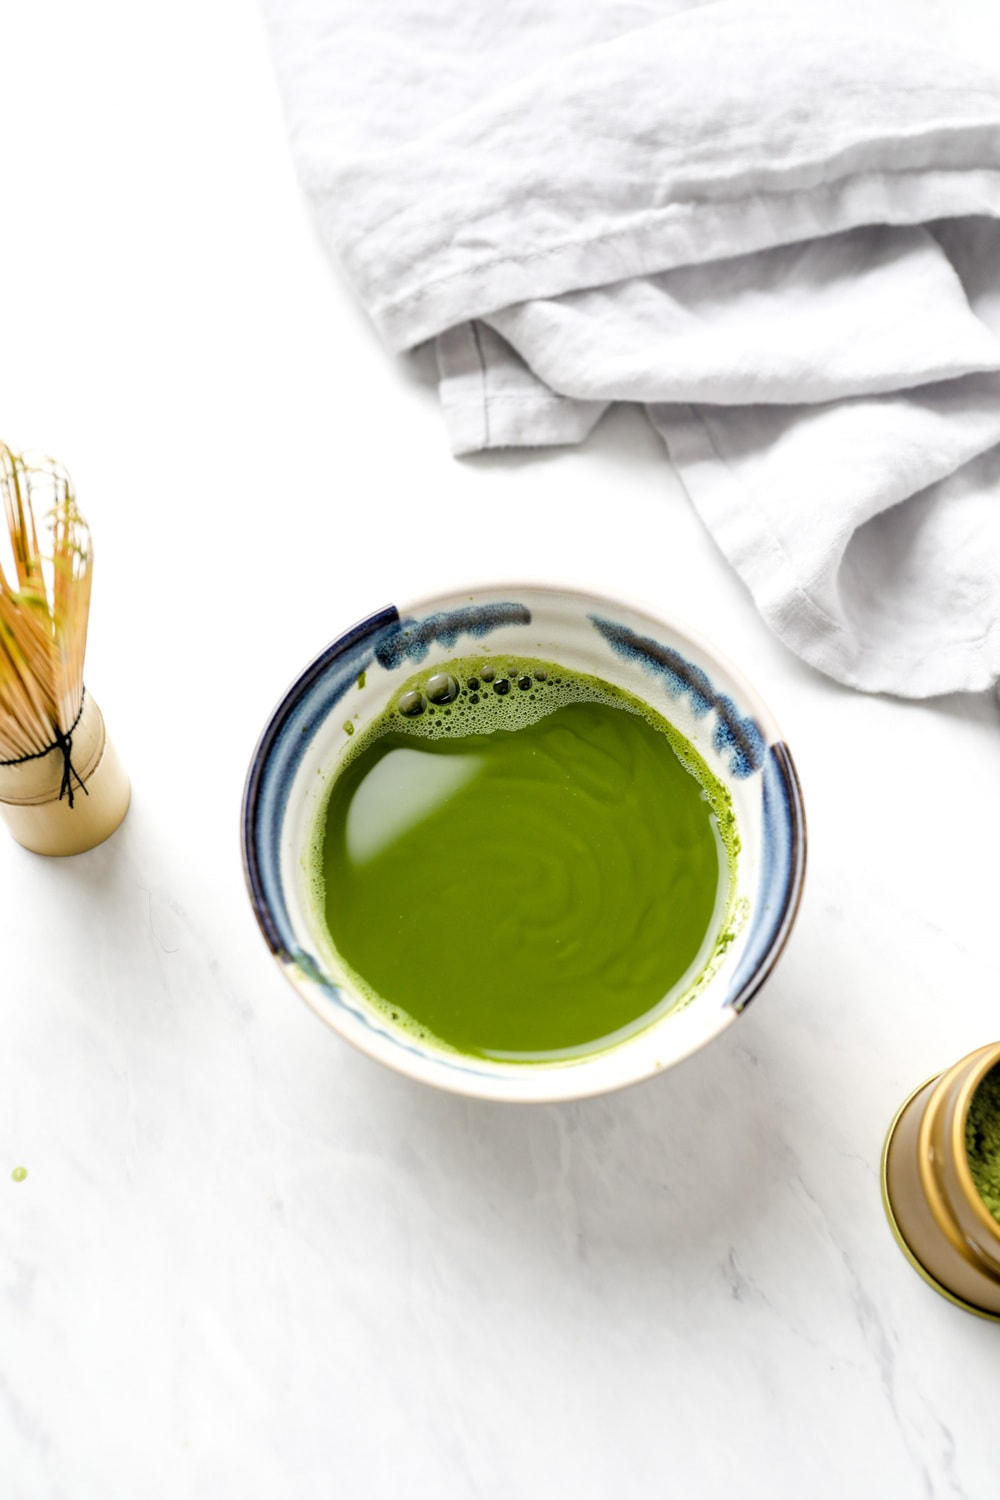 Matcha and water in a matcha bowl.